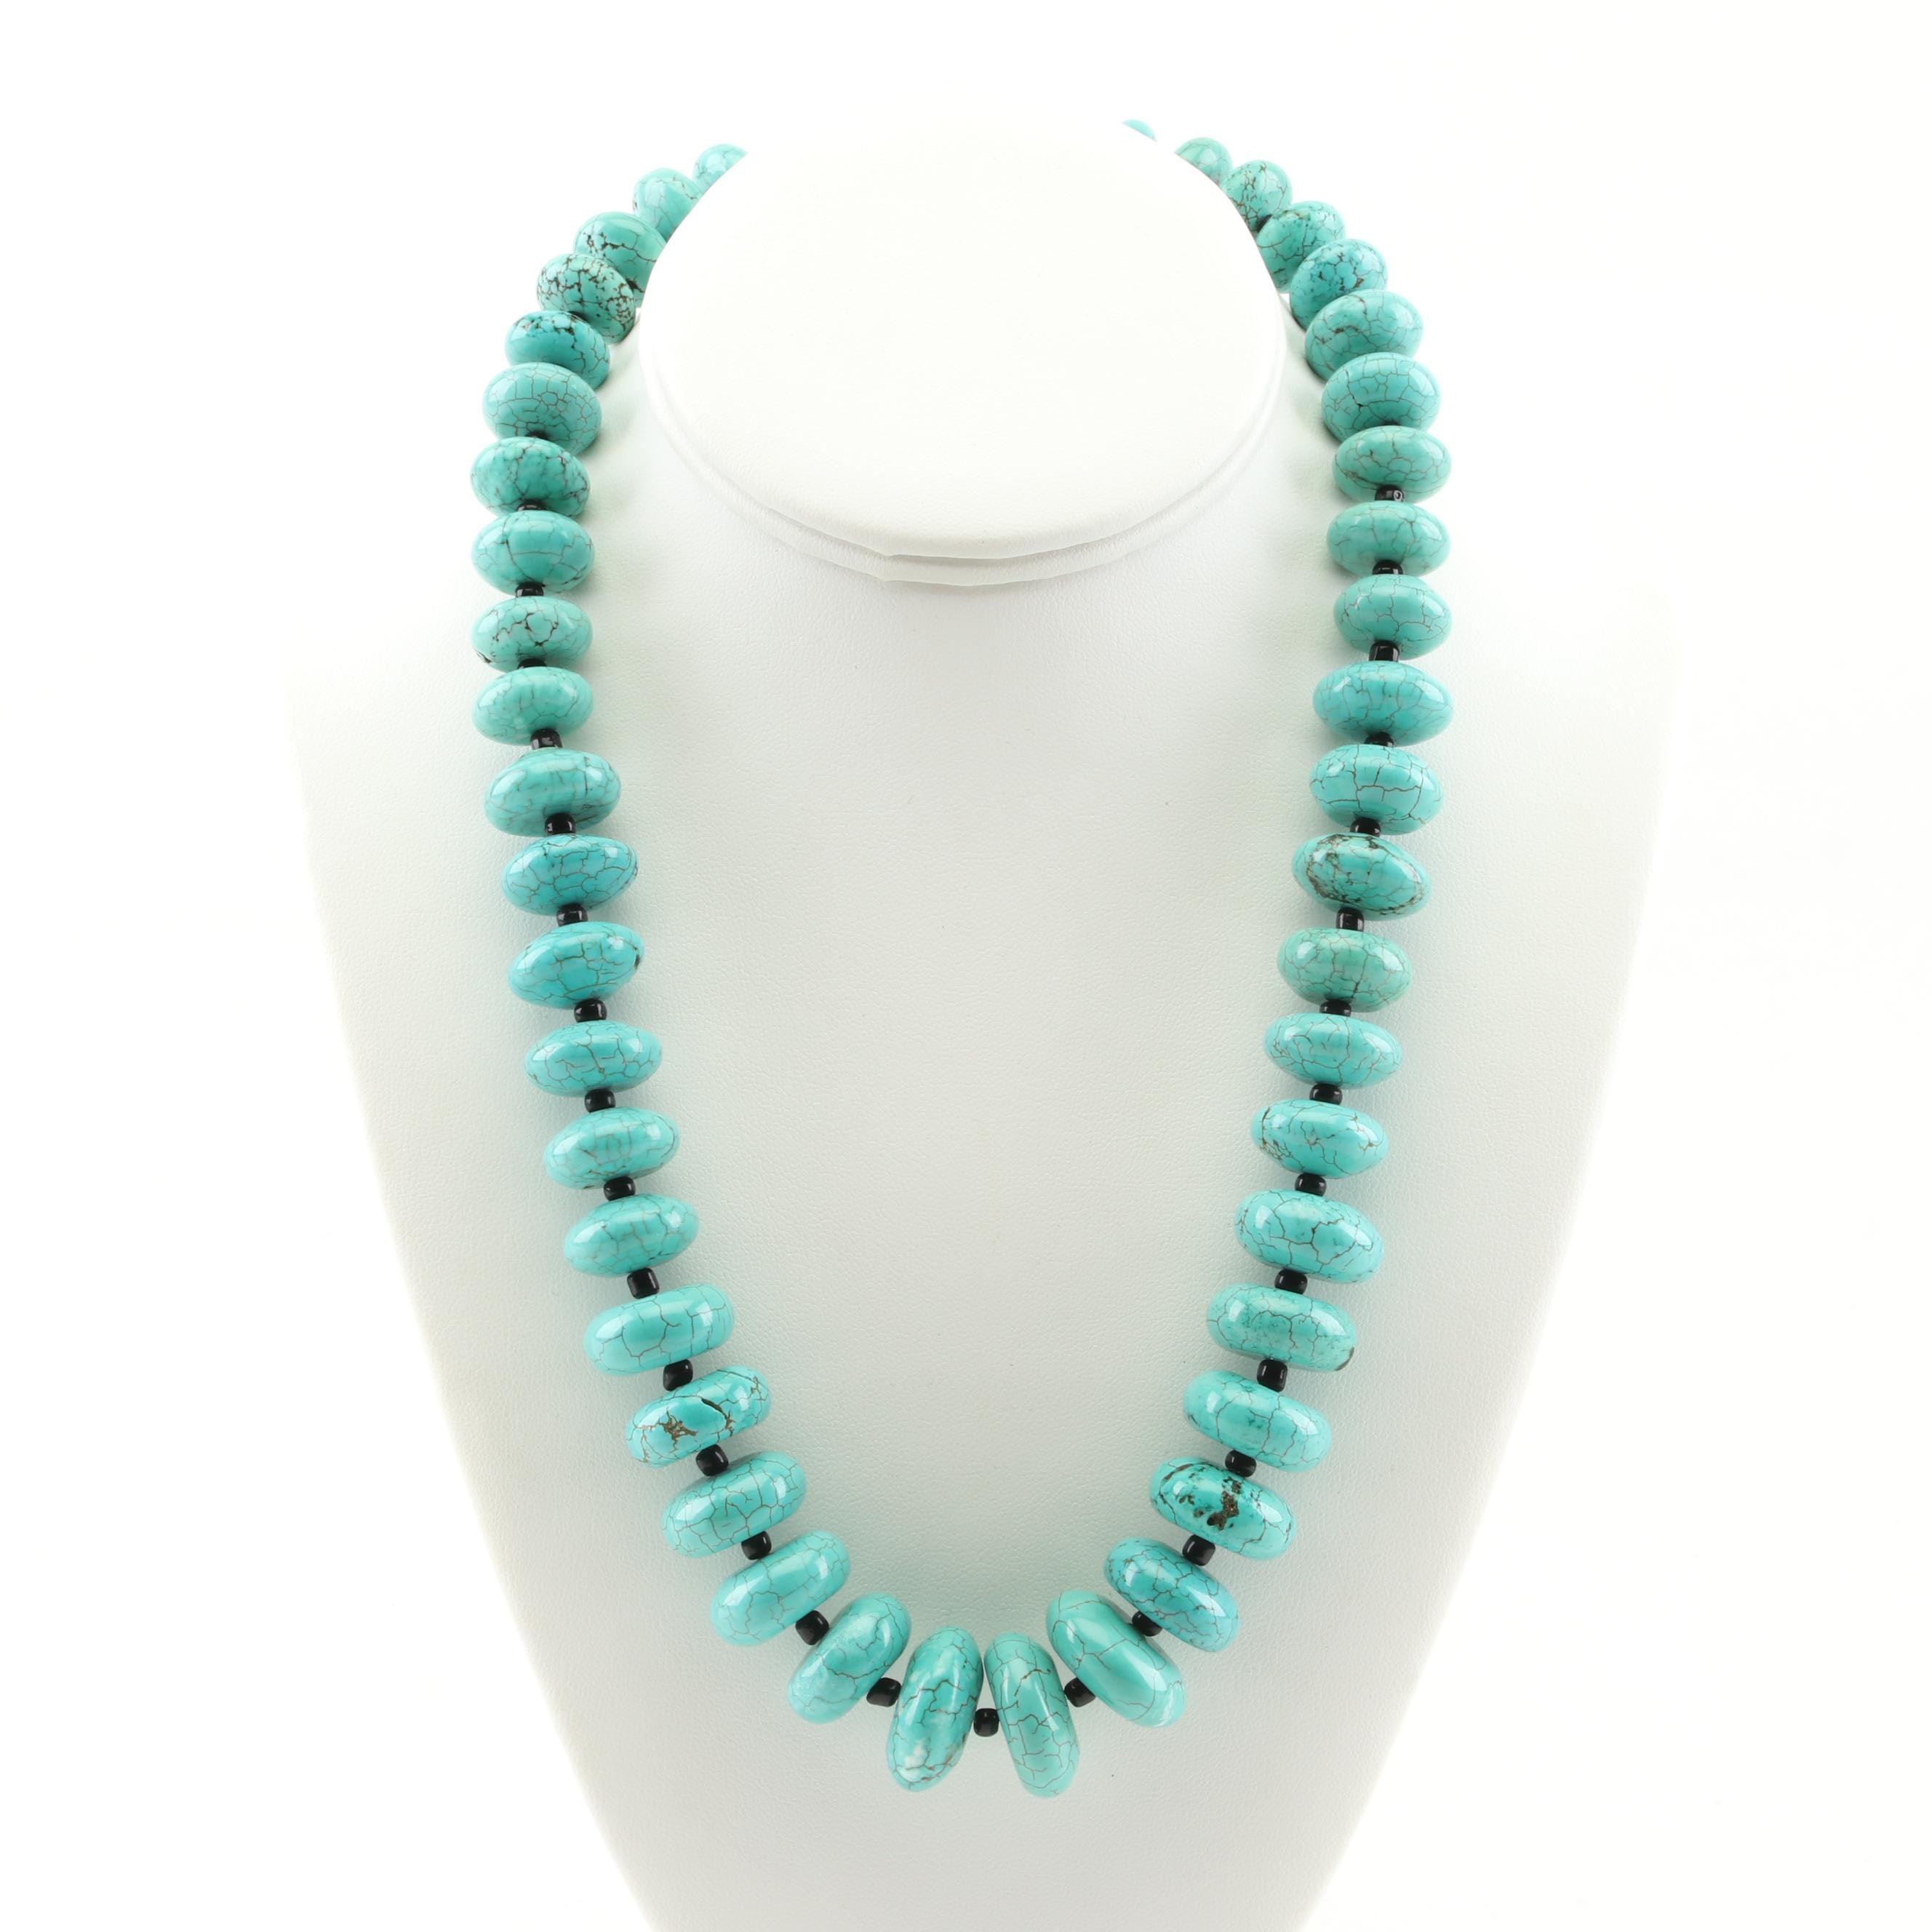 Silver Tone Turquoise Necklace